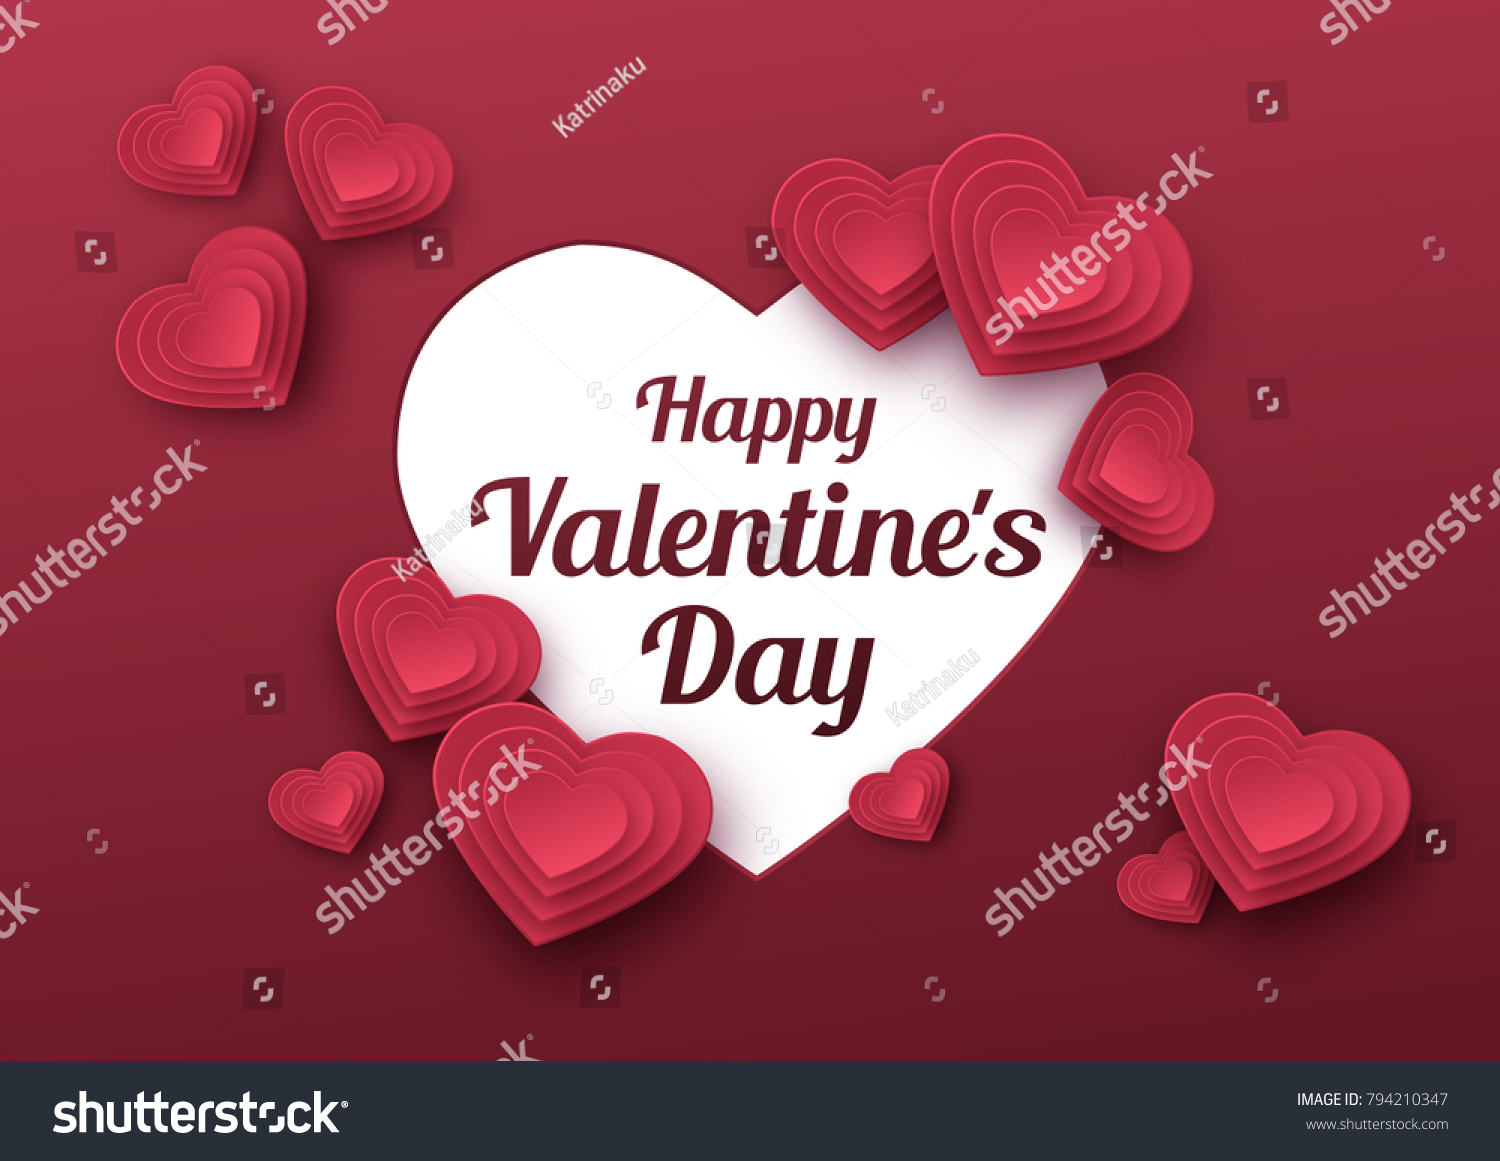 Happy valentines day greeting card paper stock vector 794210347 happy valentines day greeting card paper art love and wedding red paper hearts kristyandbryce Image collections